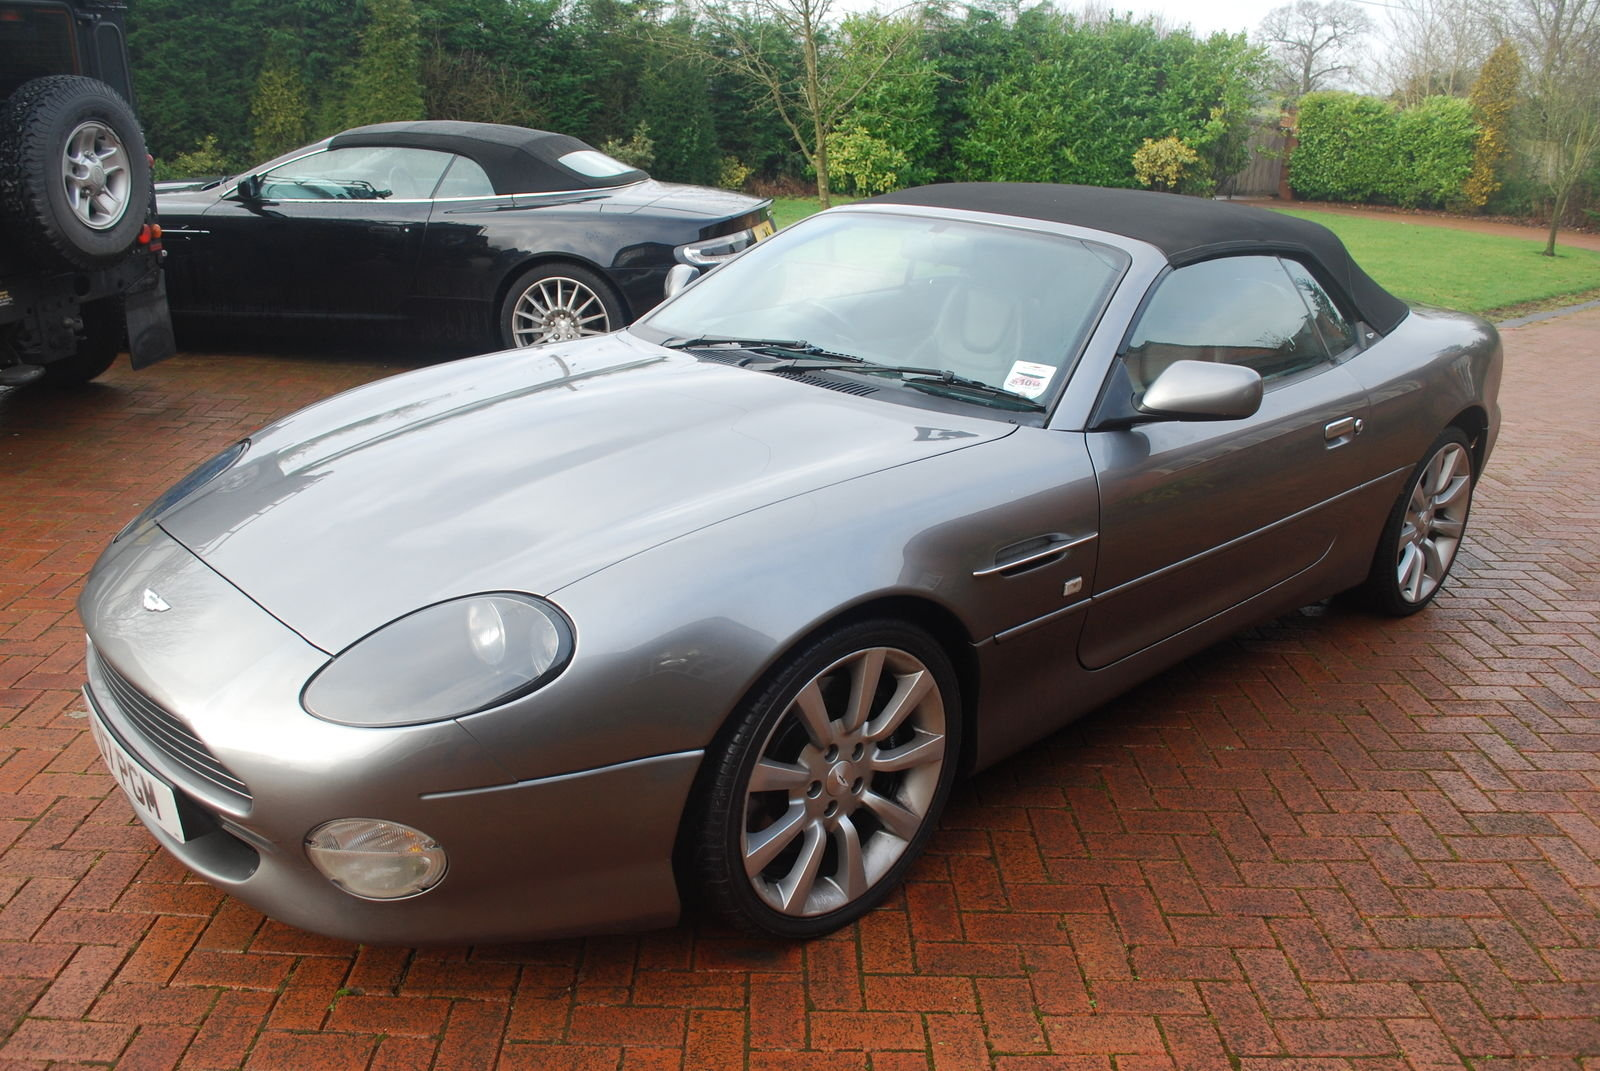 2003 Aston Martin Volante V2 Auto 17k - Simply Stunning For Sale (picture 2 of 5)